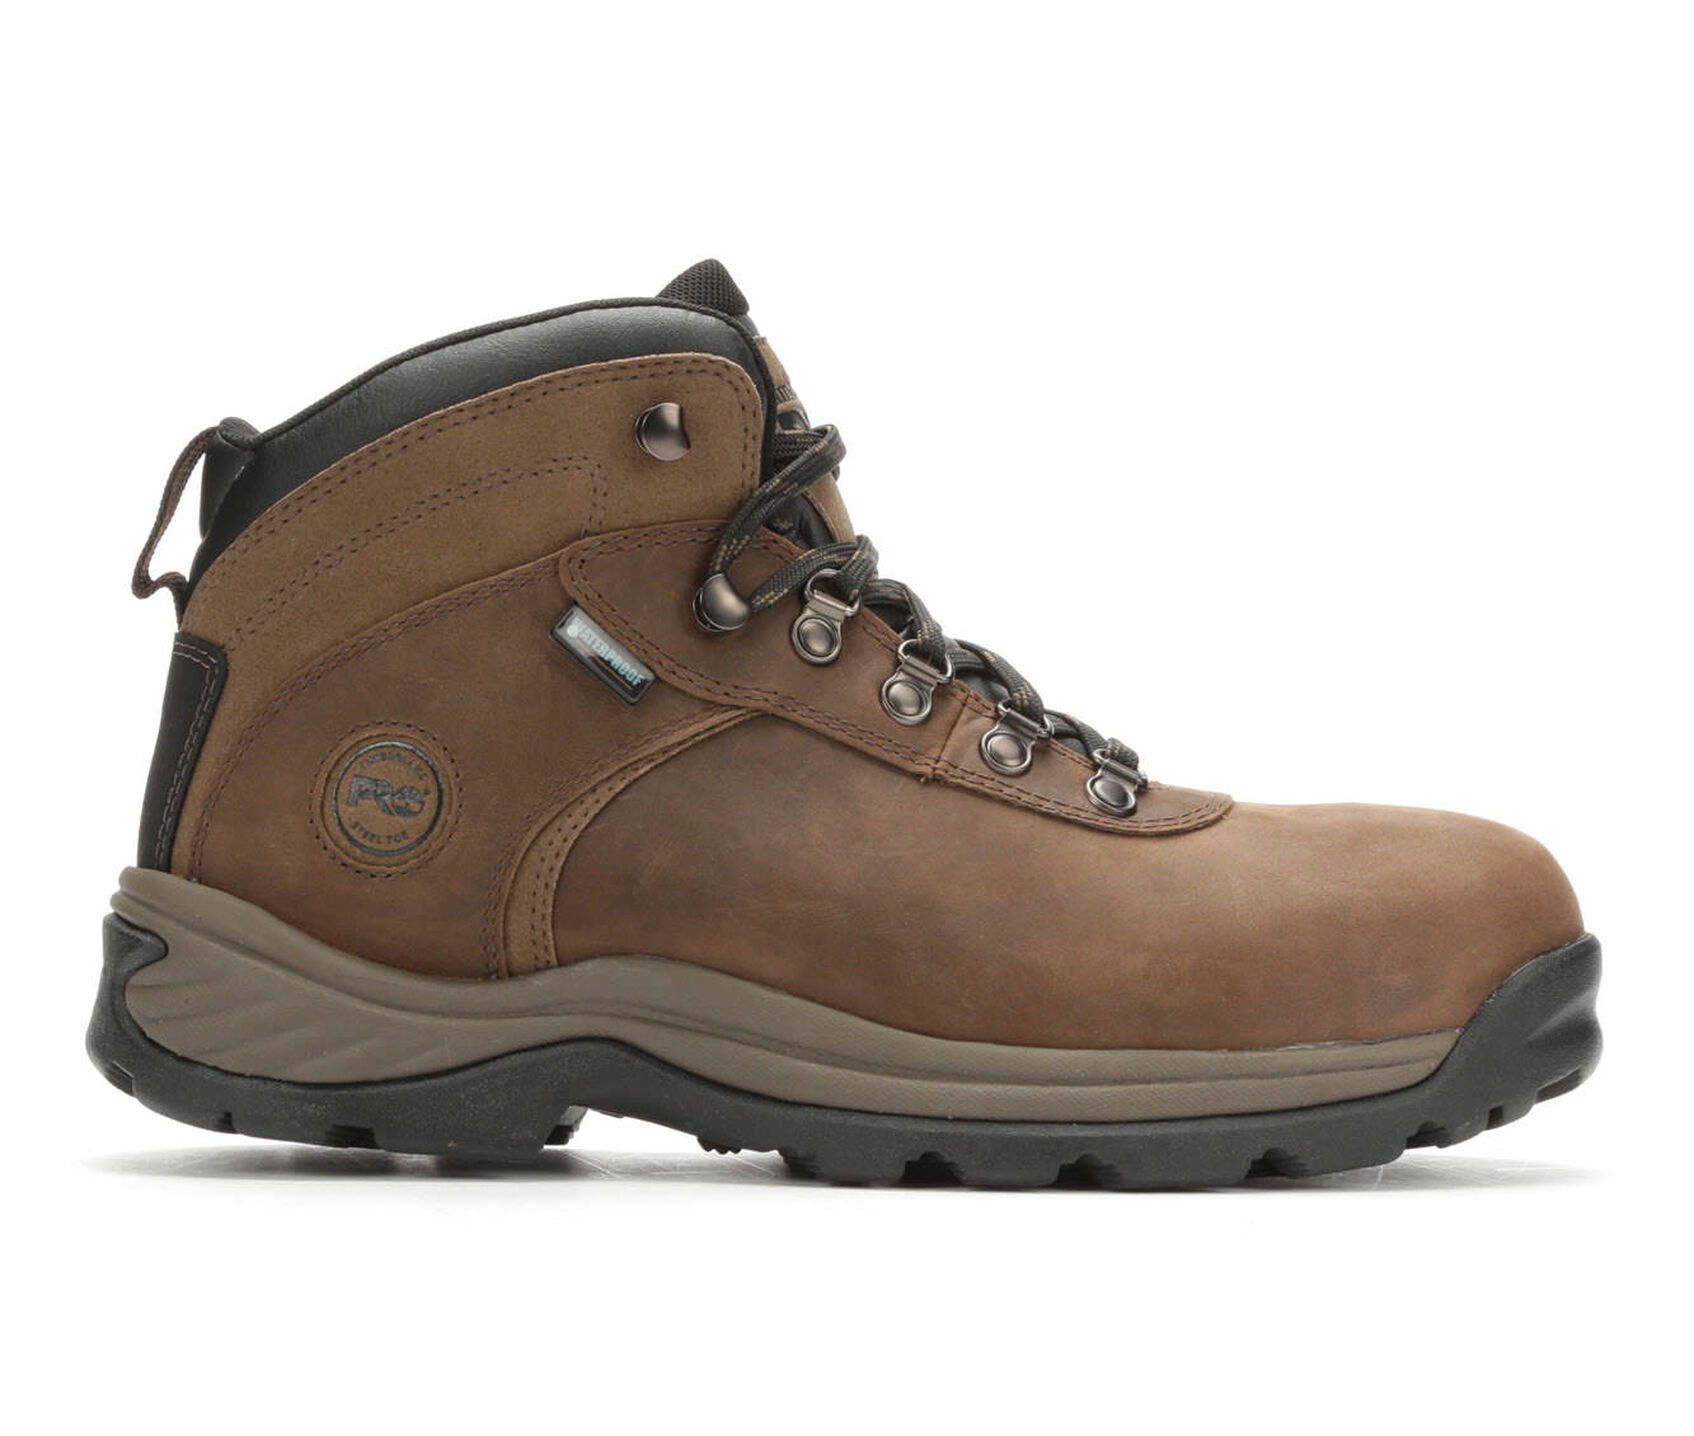 aff5acbbc45 Men's Timberland Pro Flume A1Q8V Steel Toe Waterproof Work Boots